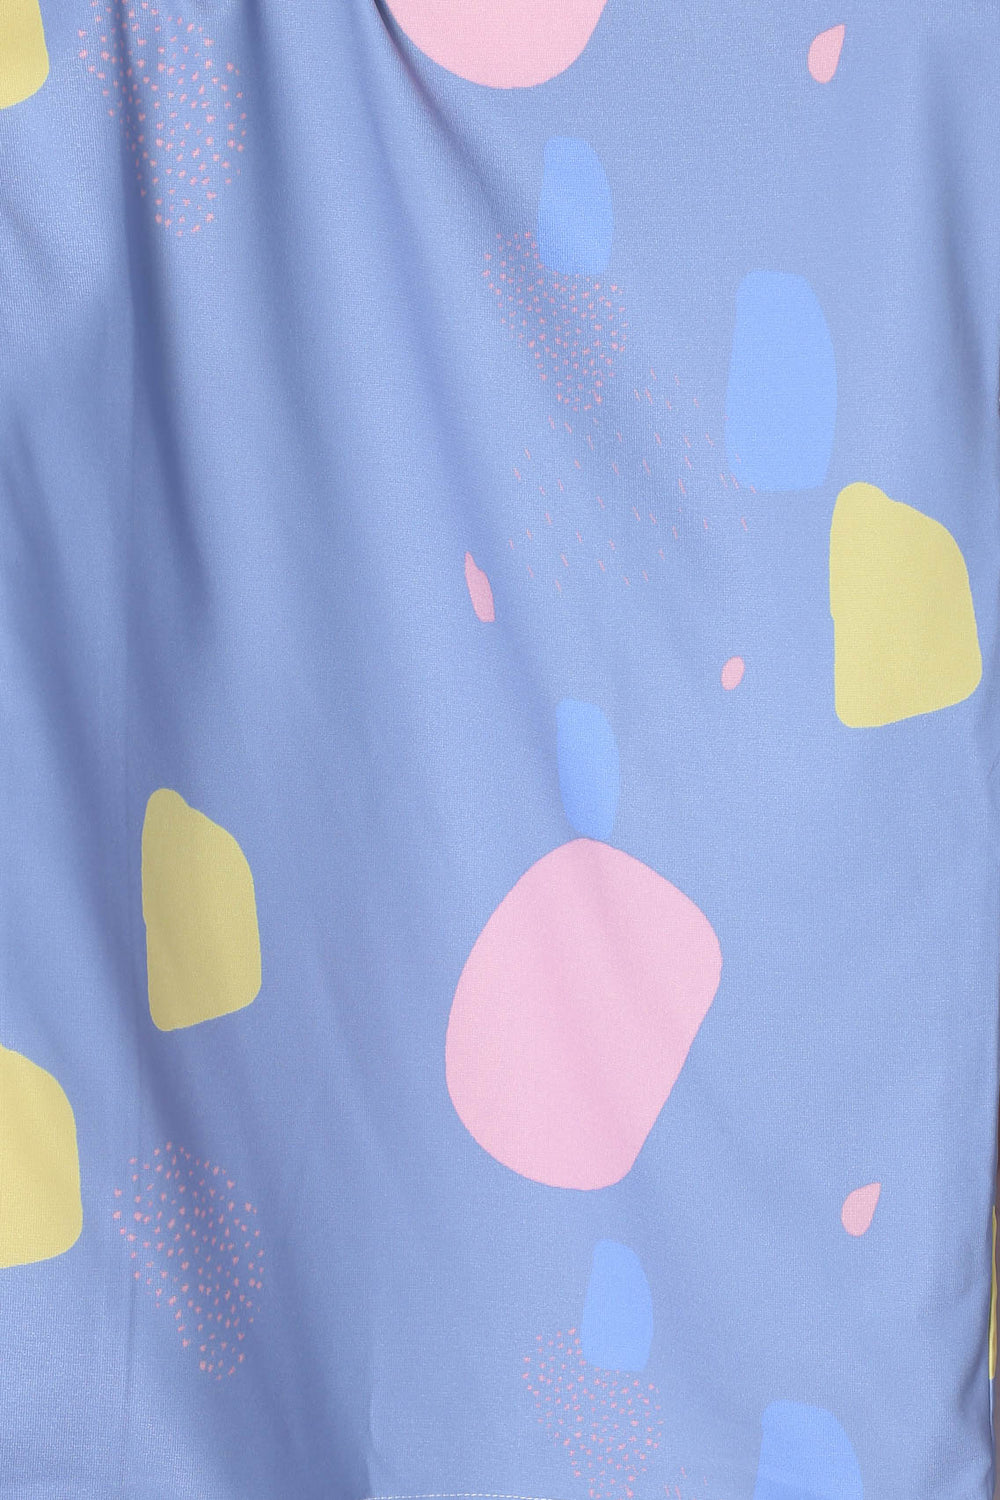 *TPZ* (PREMIUM) RERLY KIMONO ABSTRACT JACKET IN BLUE